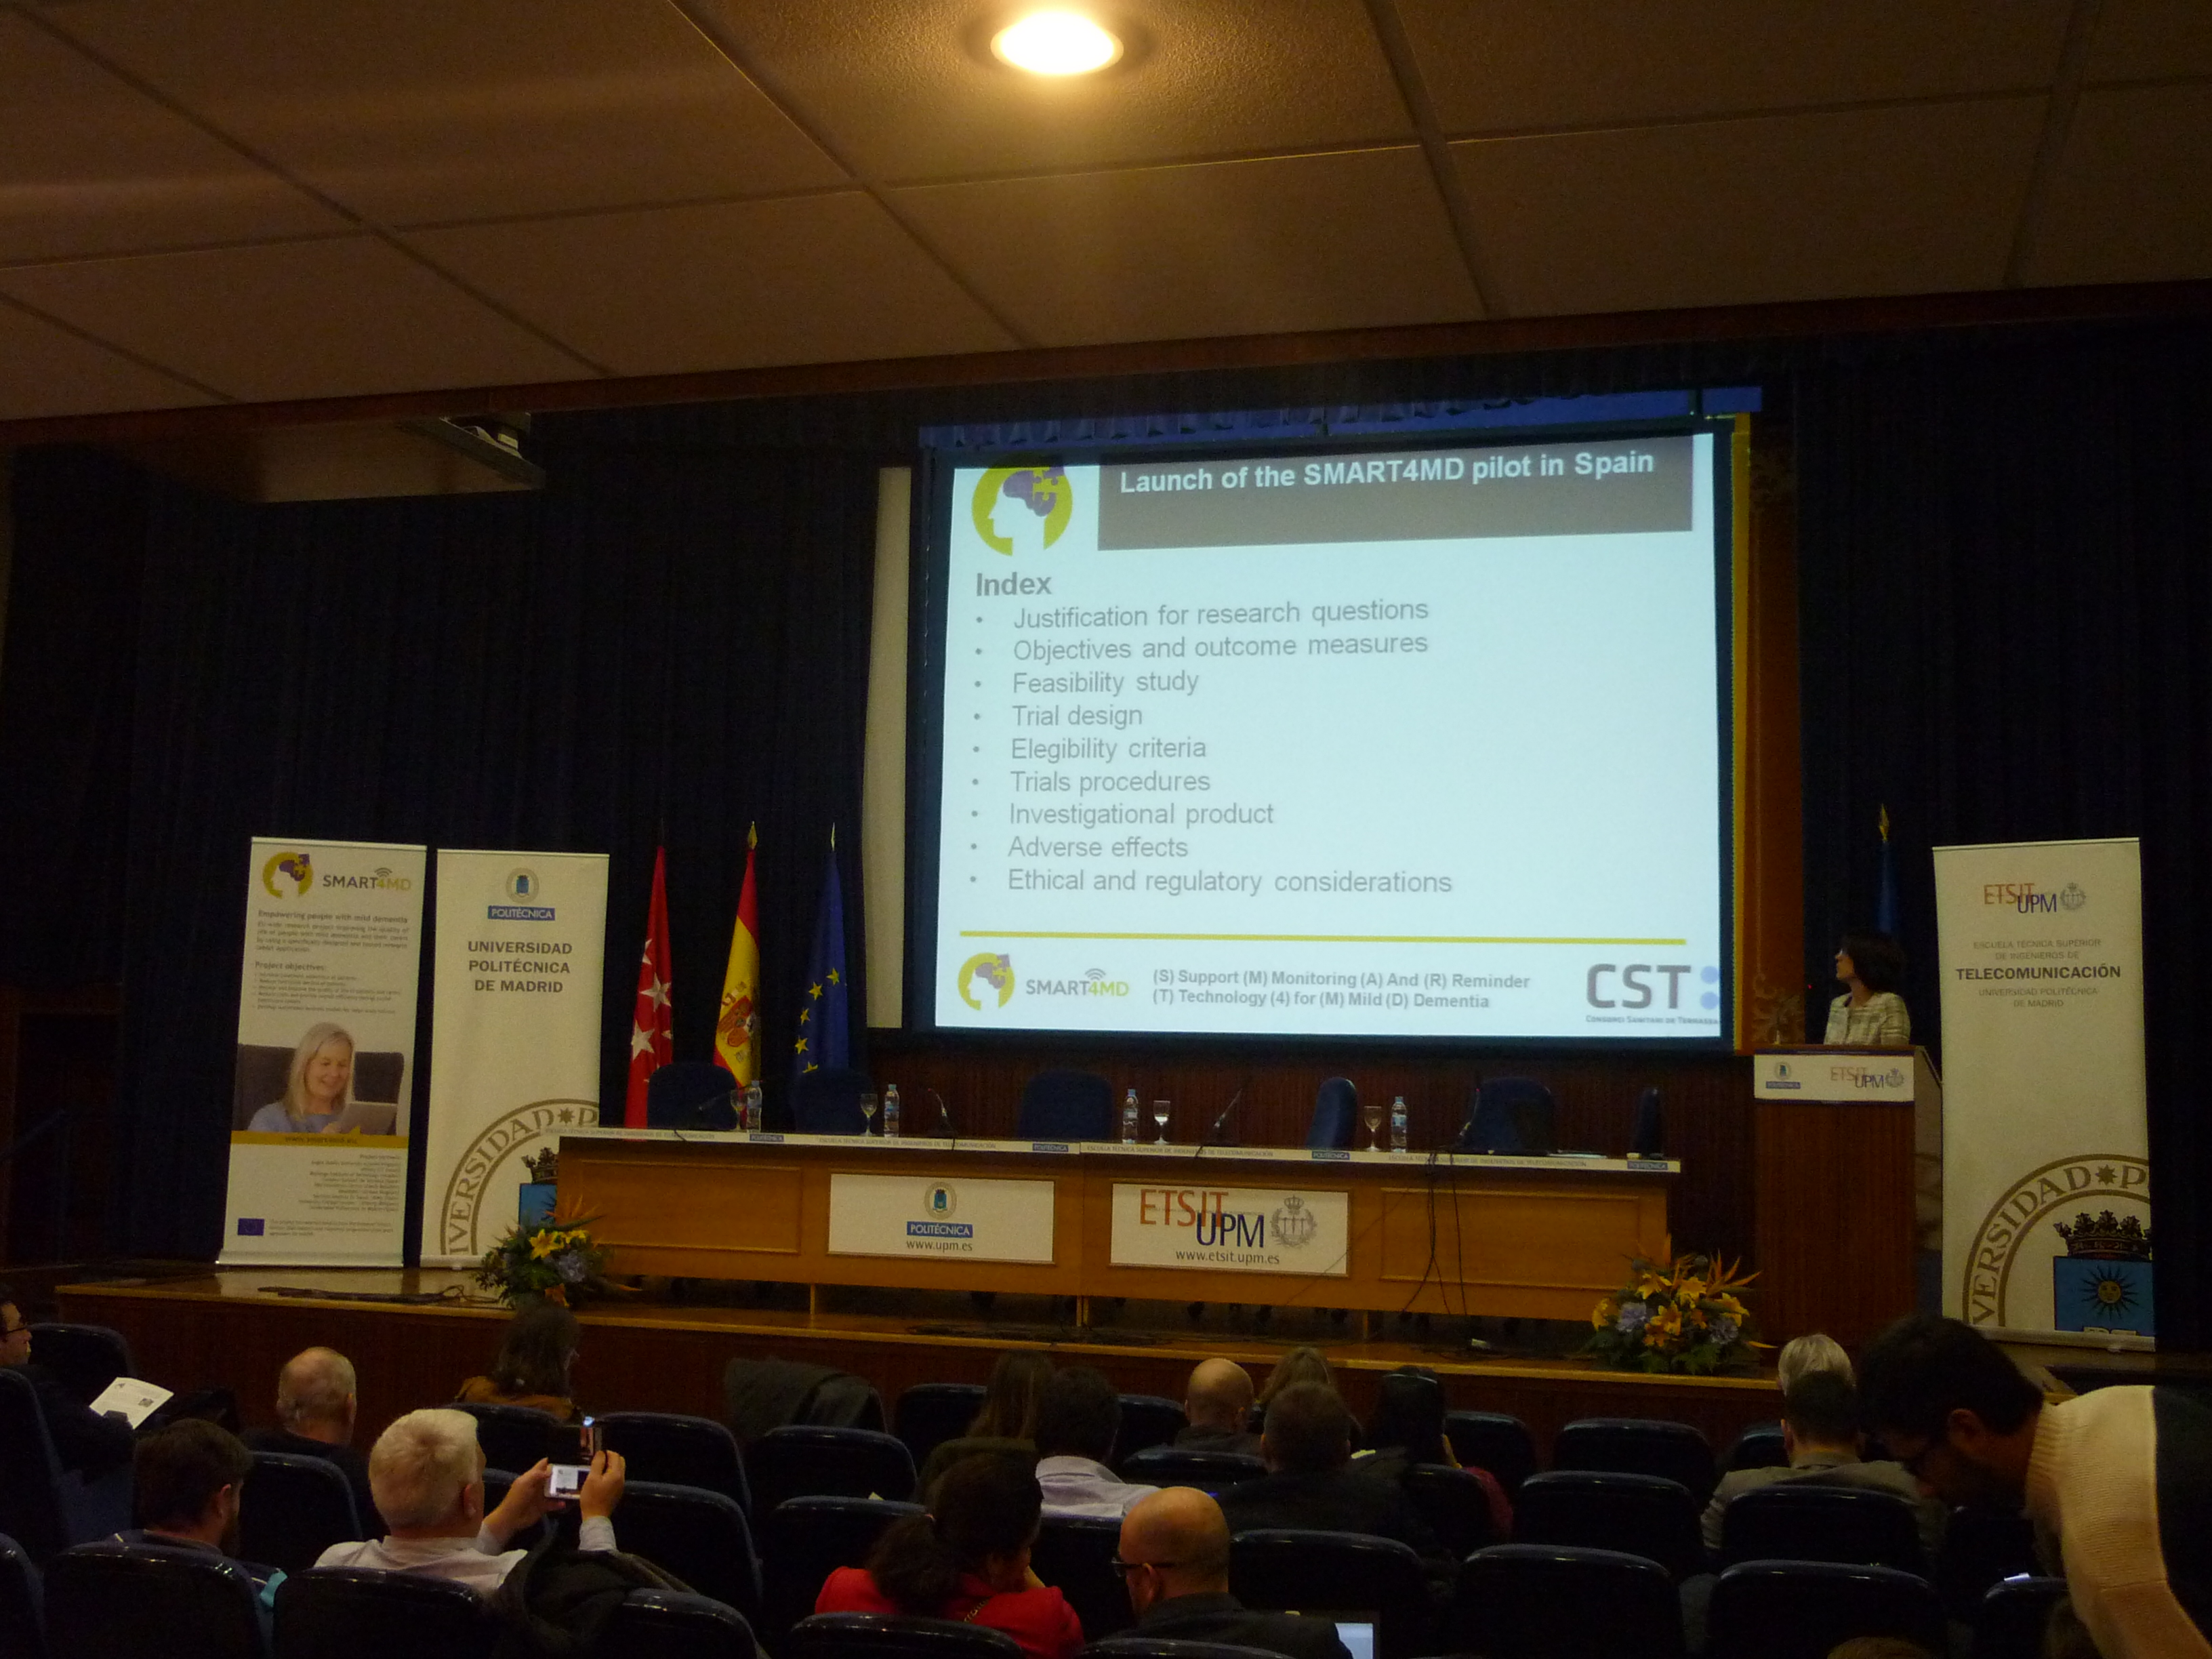 International conference in Madrid introduced a tablet application SMART4MD for people with mild dementia